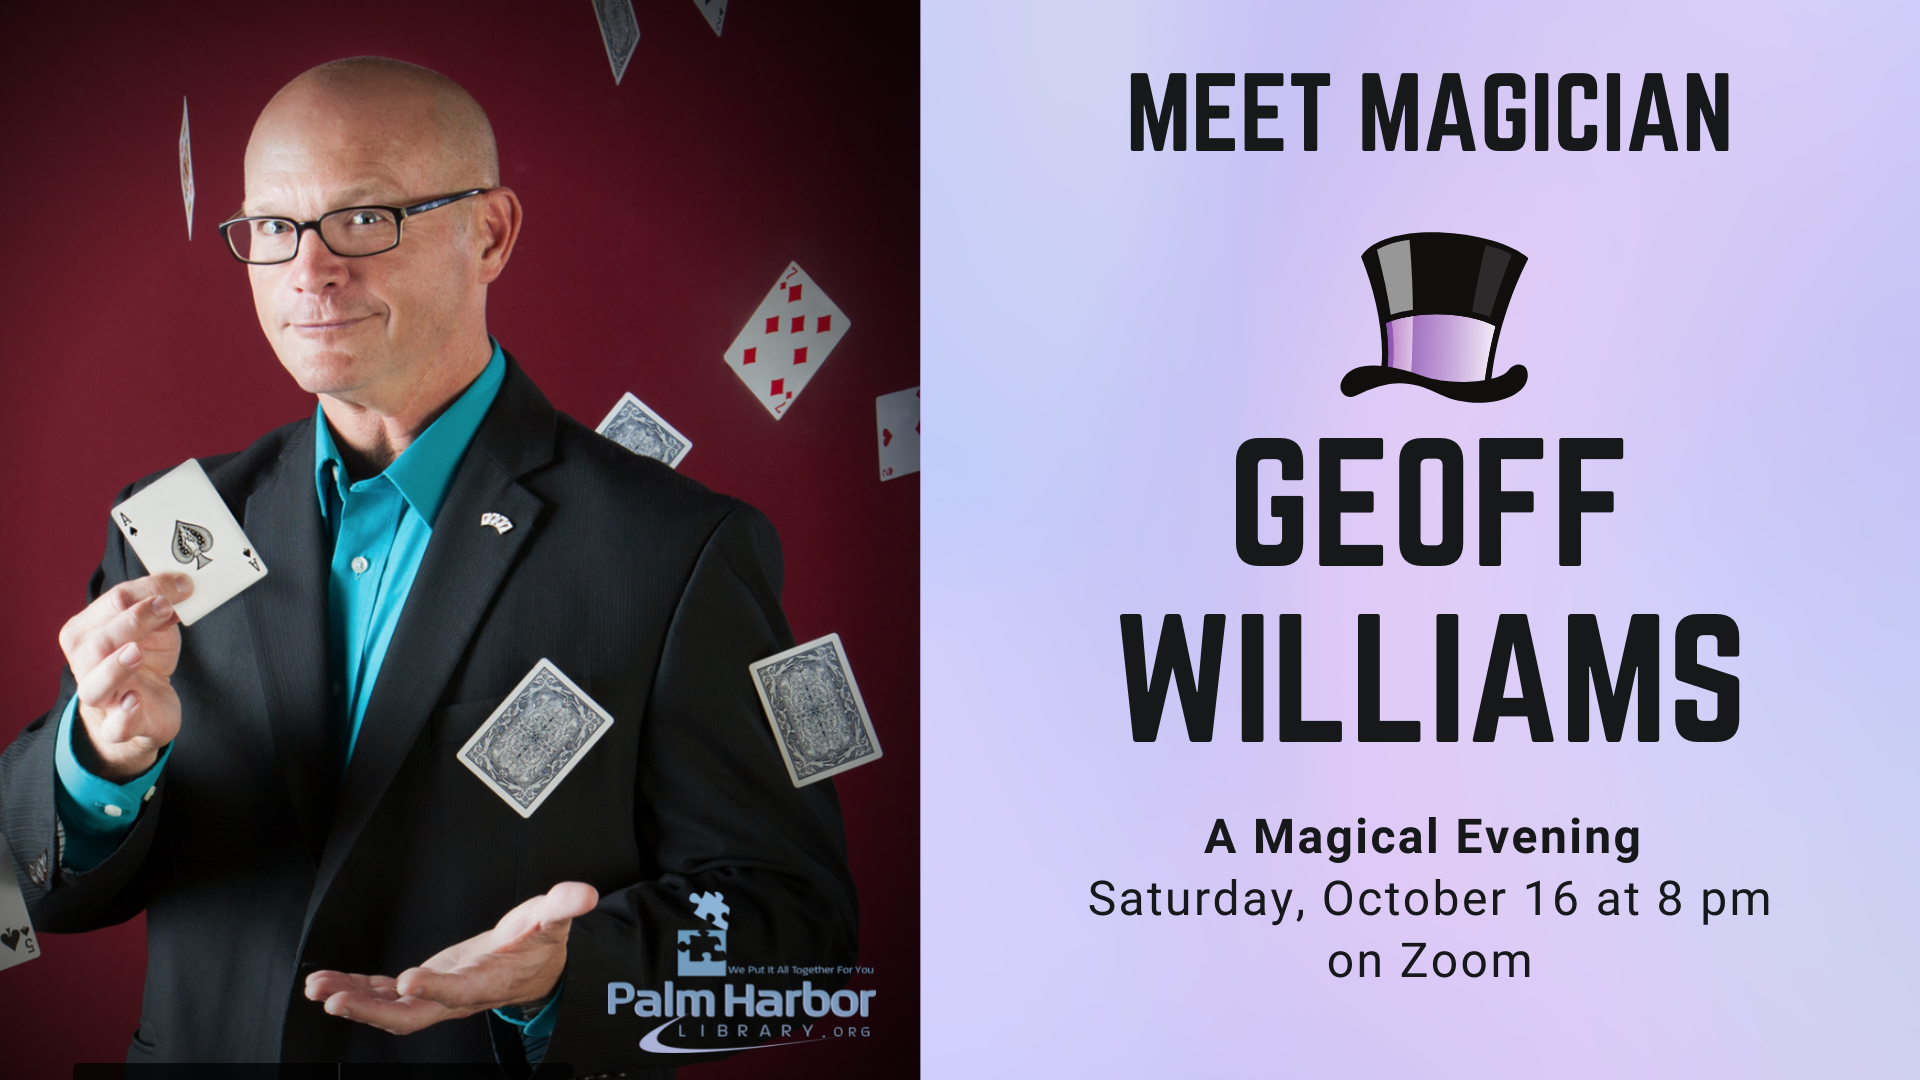 Magician Geoff Williams will be performing for A Magical Evening on October 16th, at 8 PM.